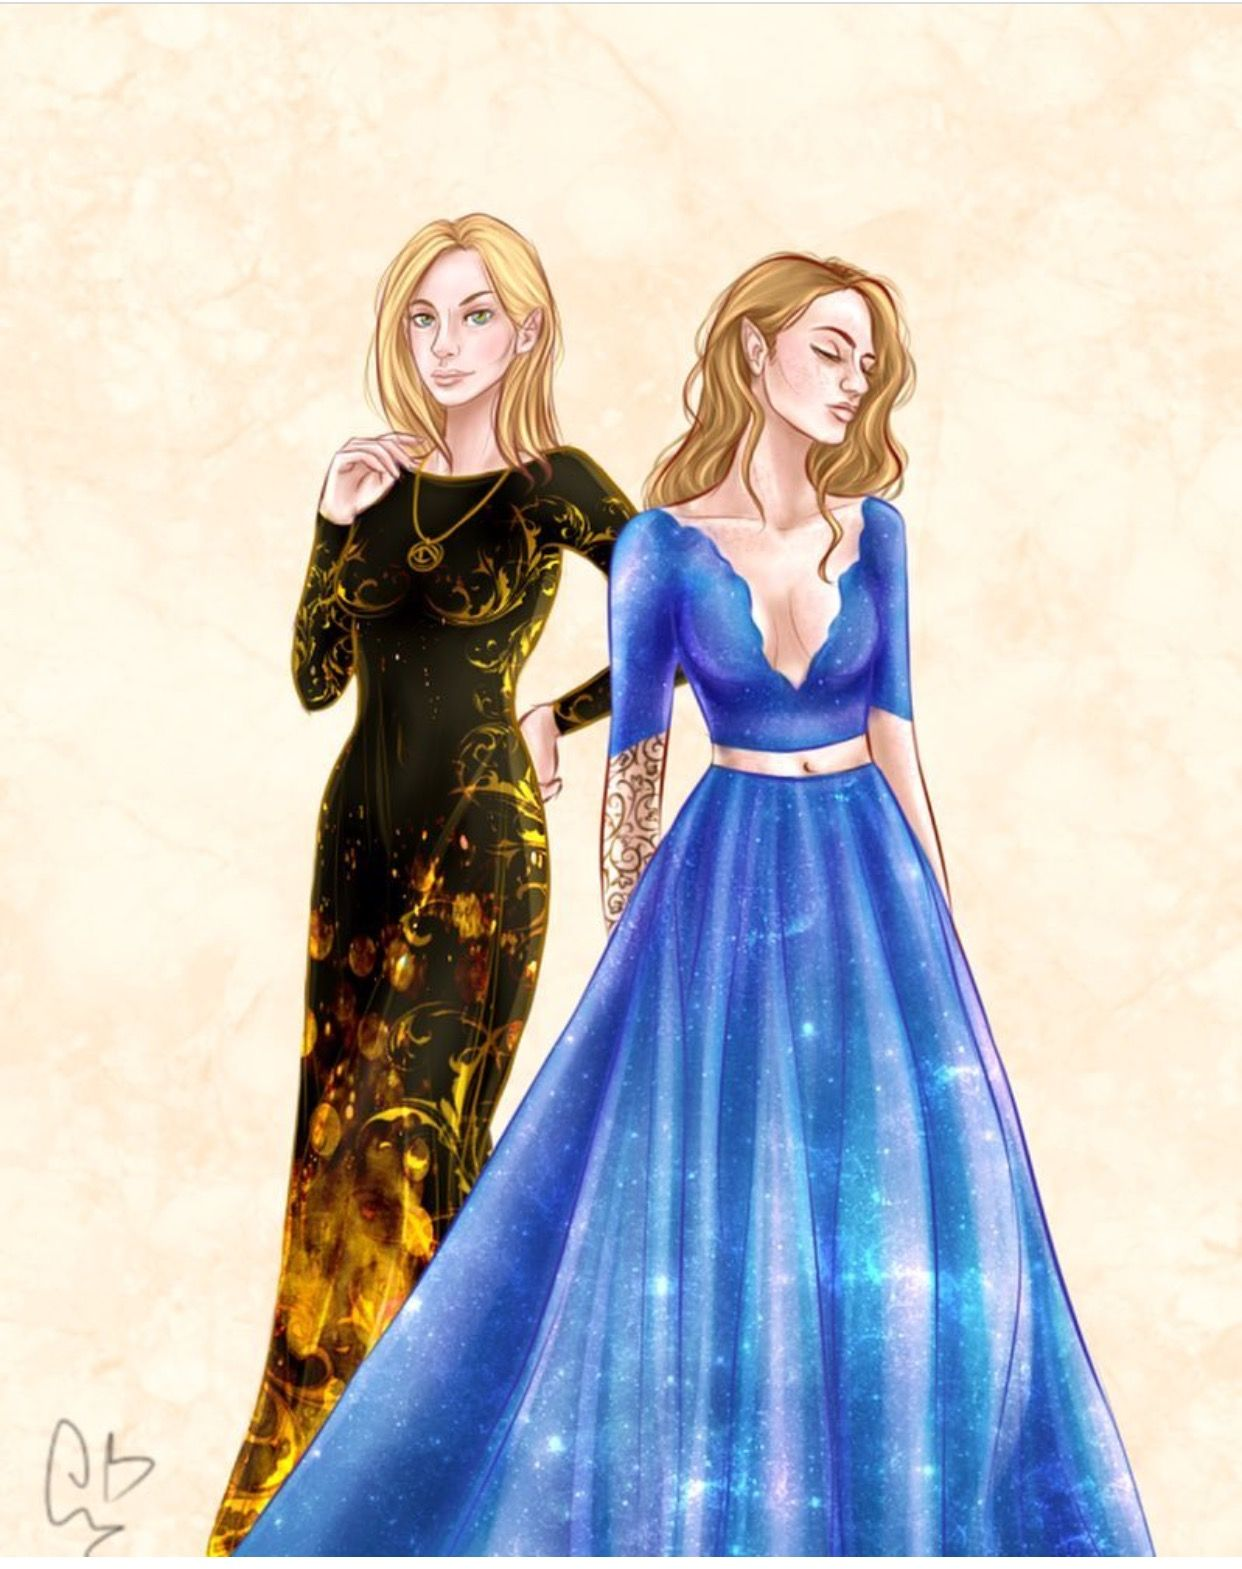 Aelins Dragon Dress And Feyres Starfall Dress Throne Of Glass